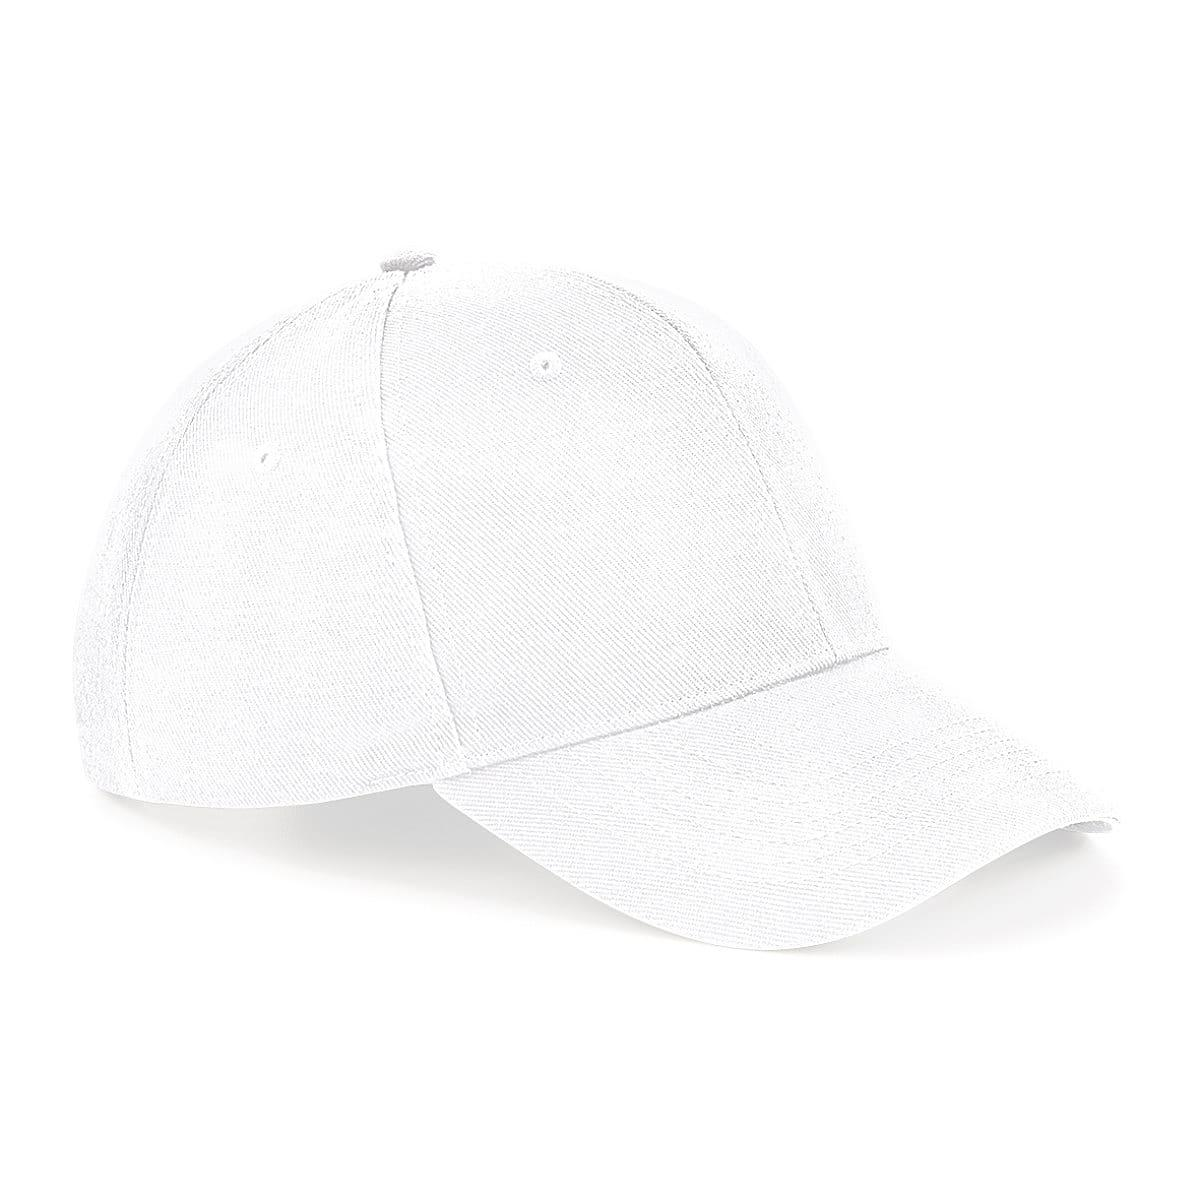 Beechfield Untimate 6 Panel Cap in White (Product Code: B18)